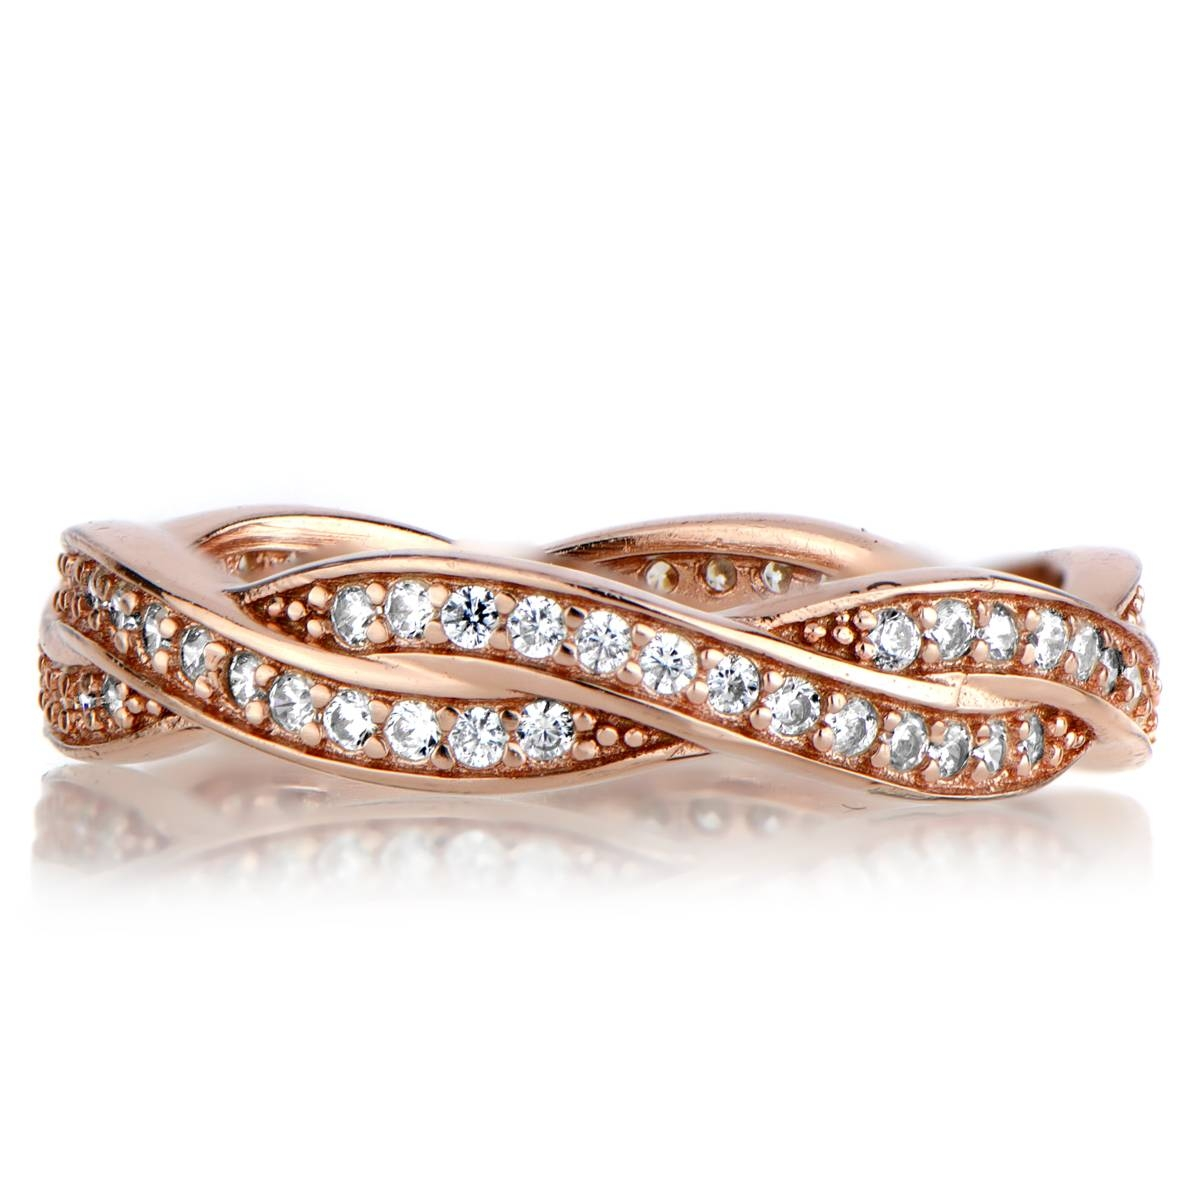 Rose Gold Twisted Cz Wedding Ring Band With Regard To Rose Gold Wedding Bands (View 11 of 15)